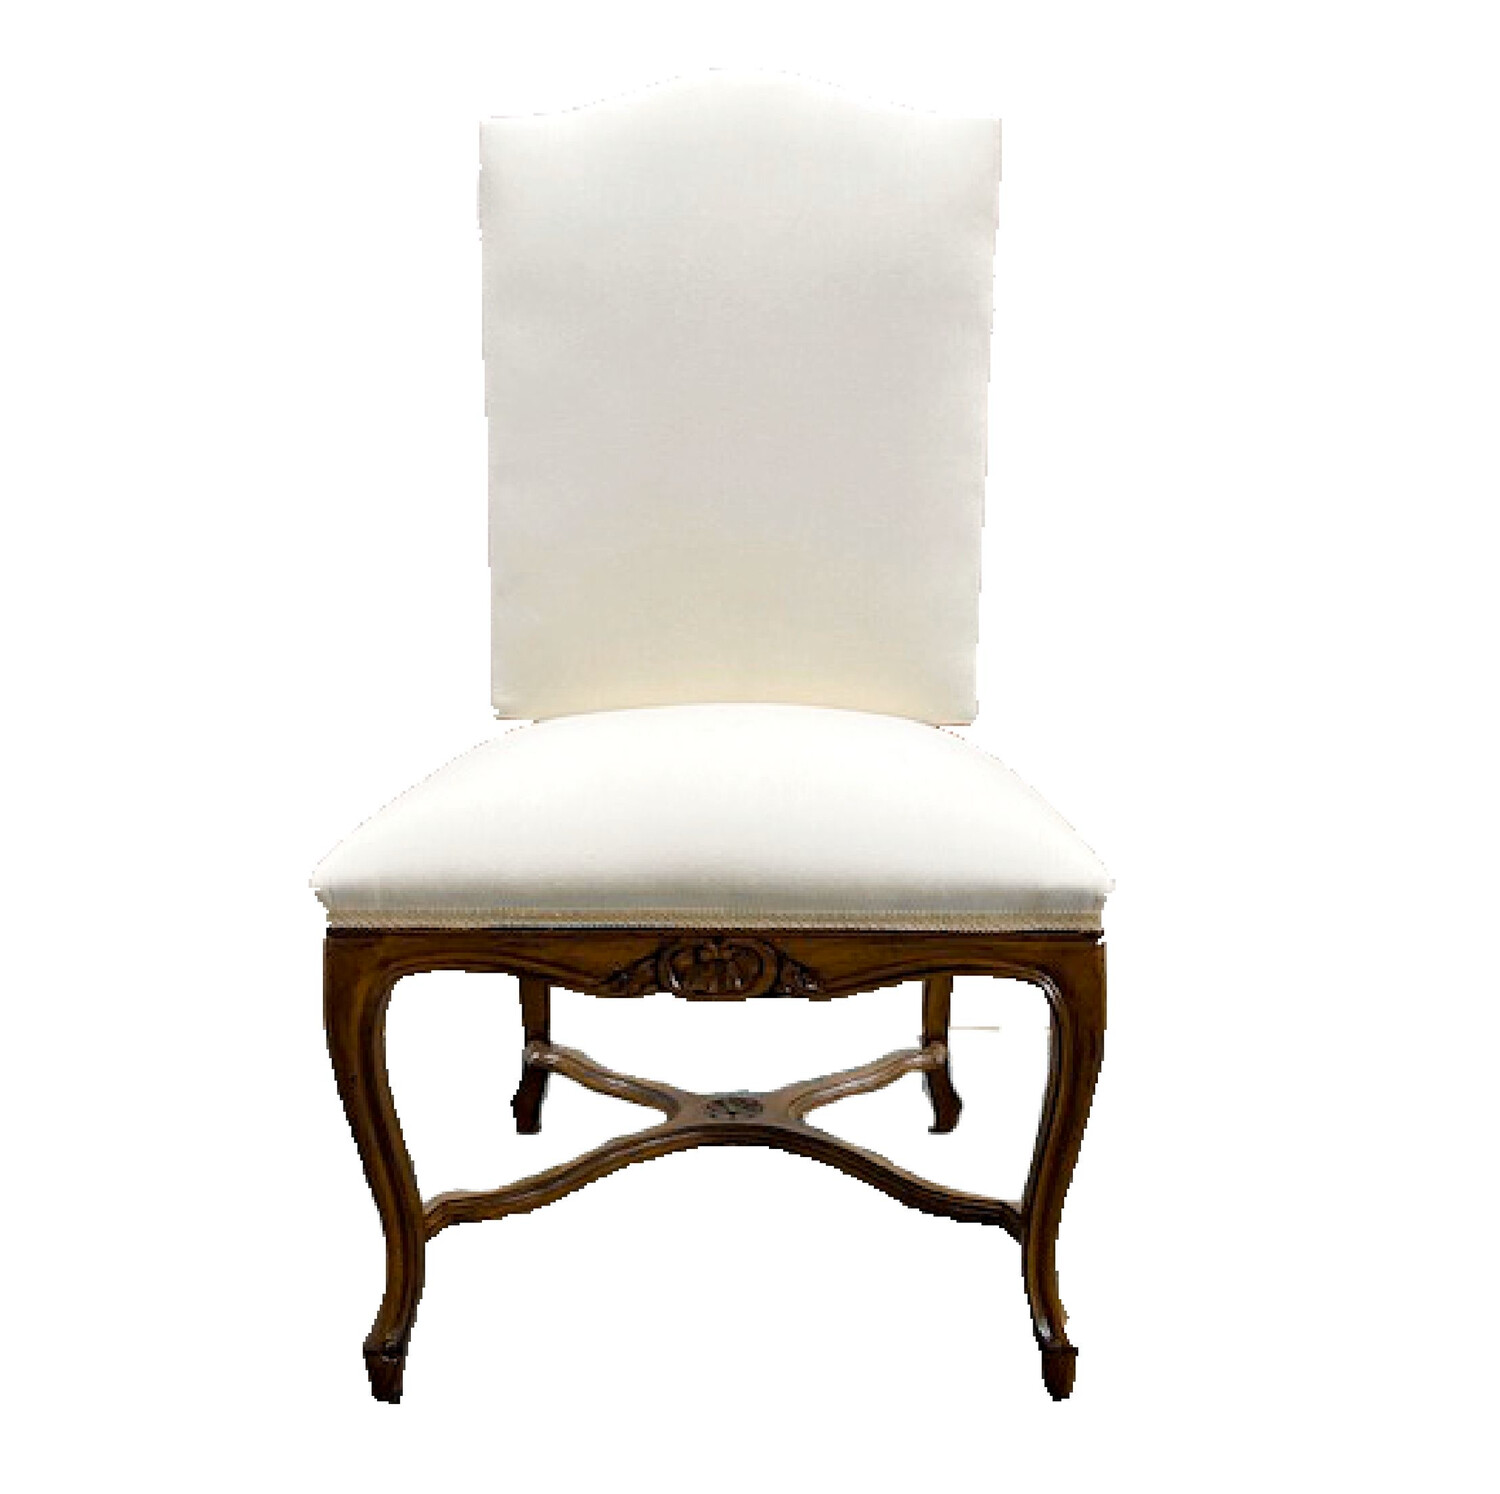 Auffray & Co White Linen Wood Carved Chair